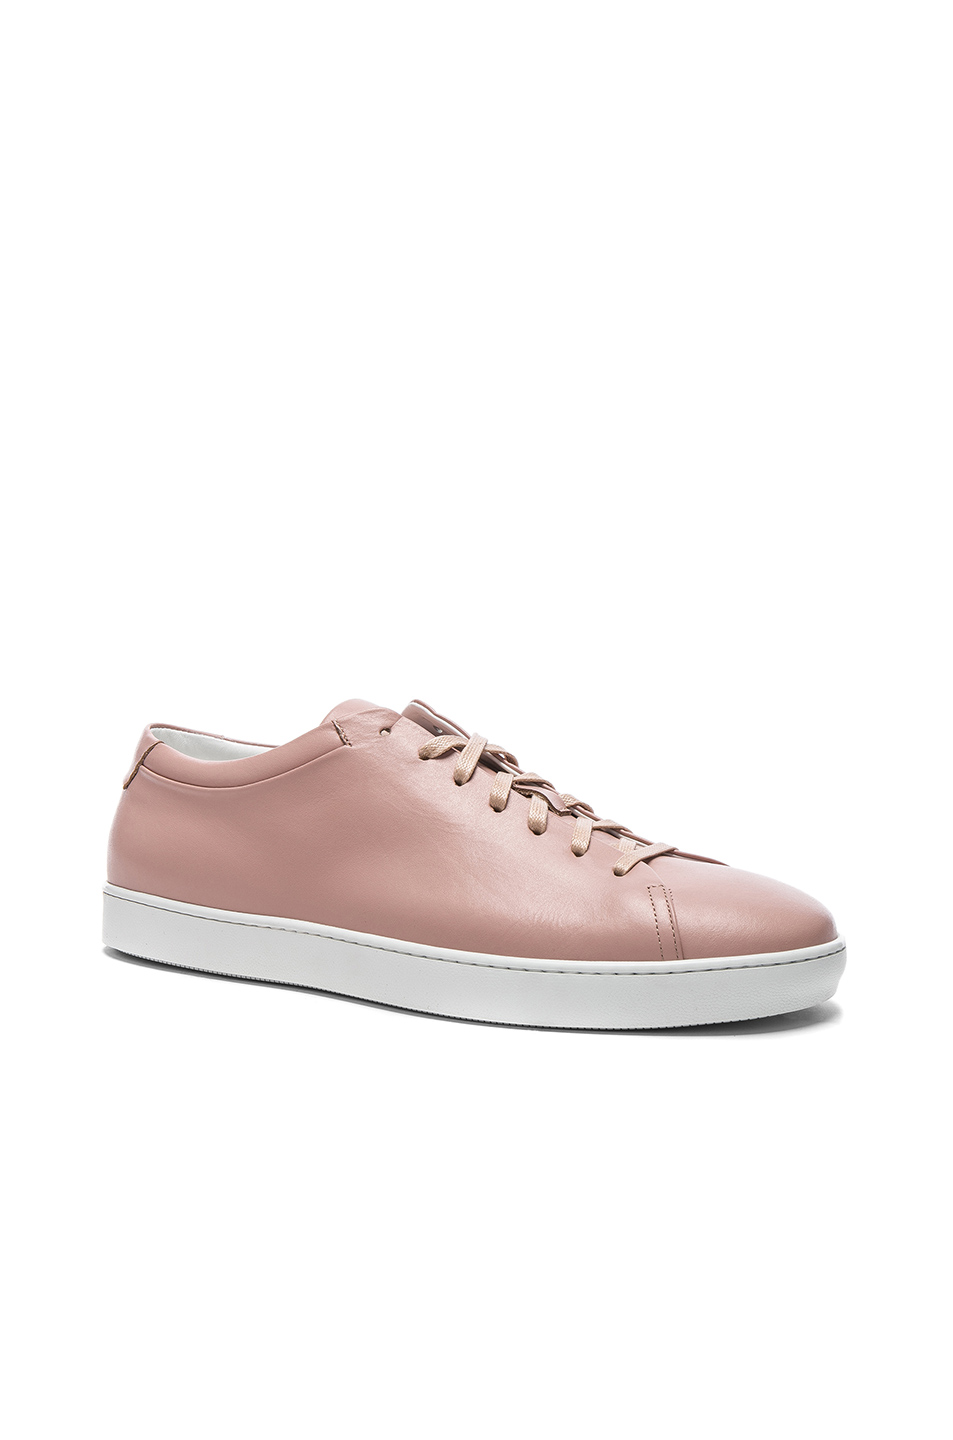 JOHN ELLIOTT Leather Low Tops in Pink